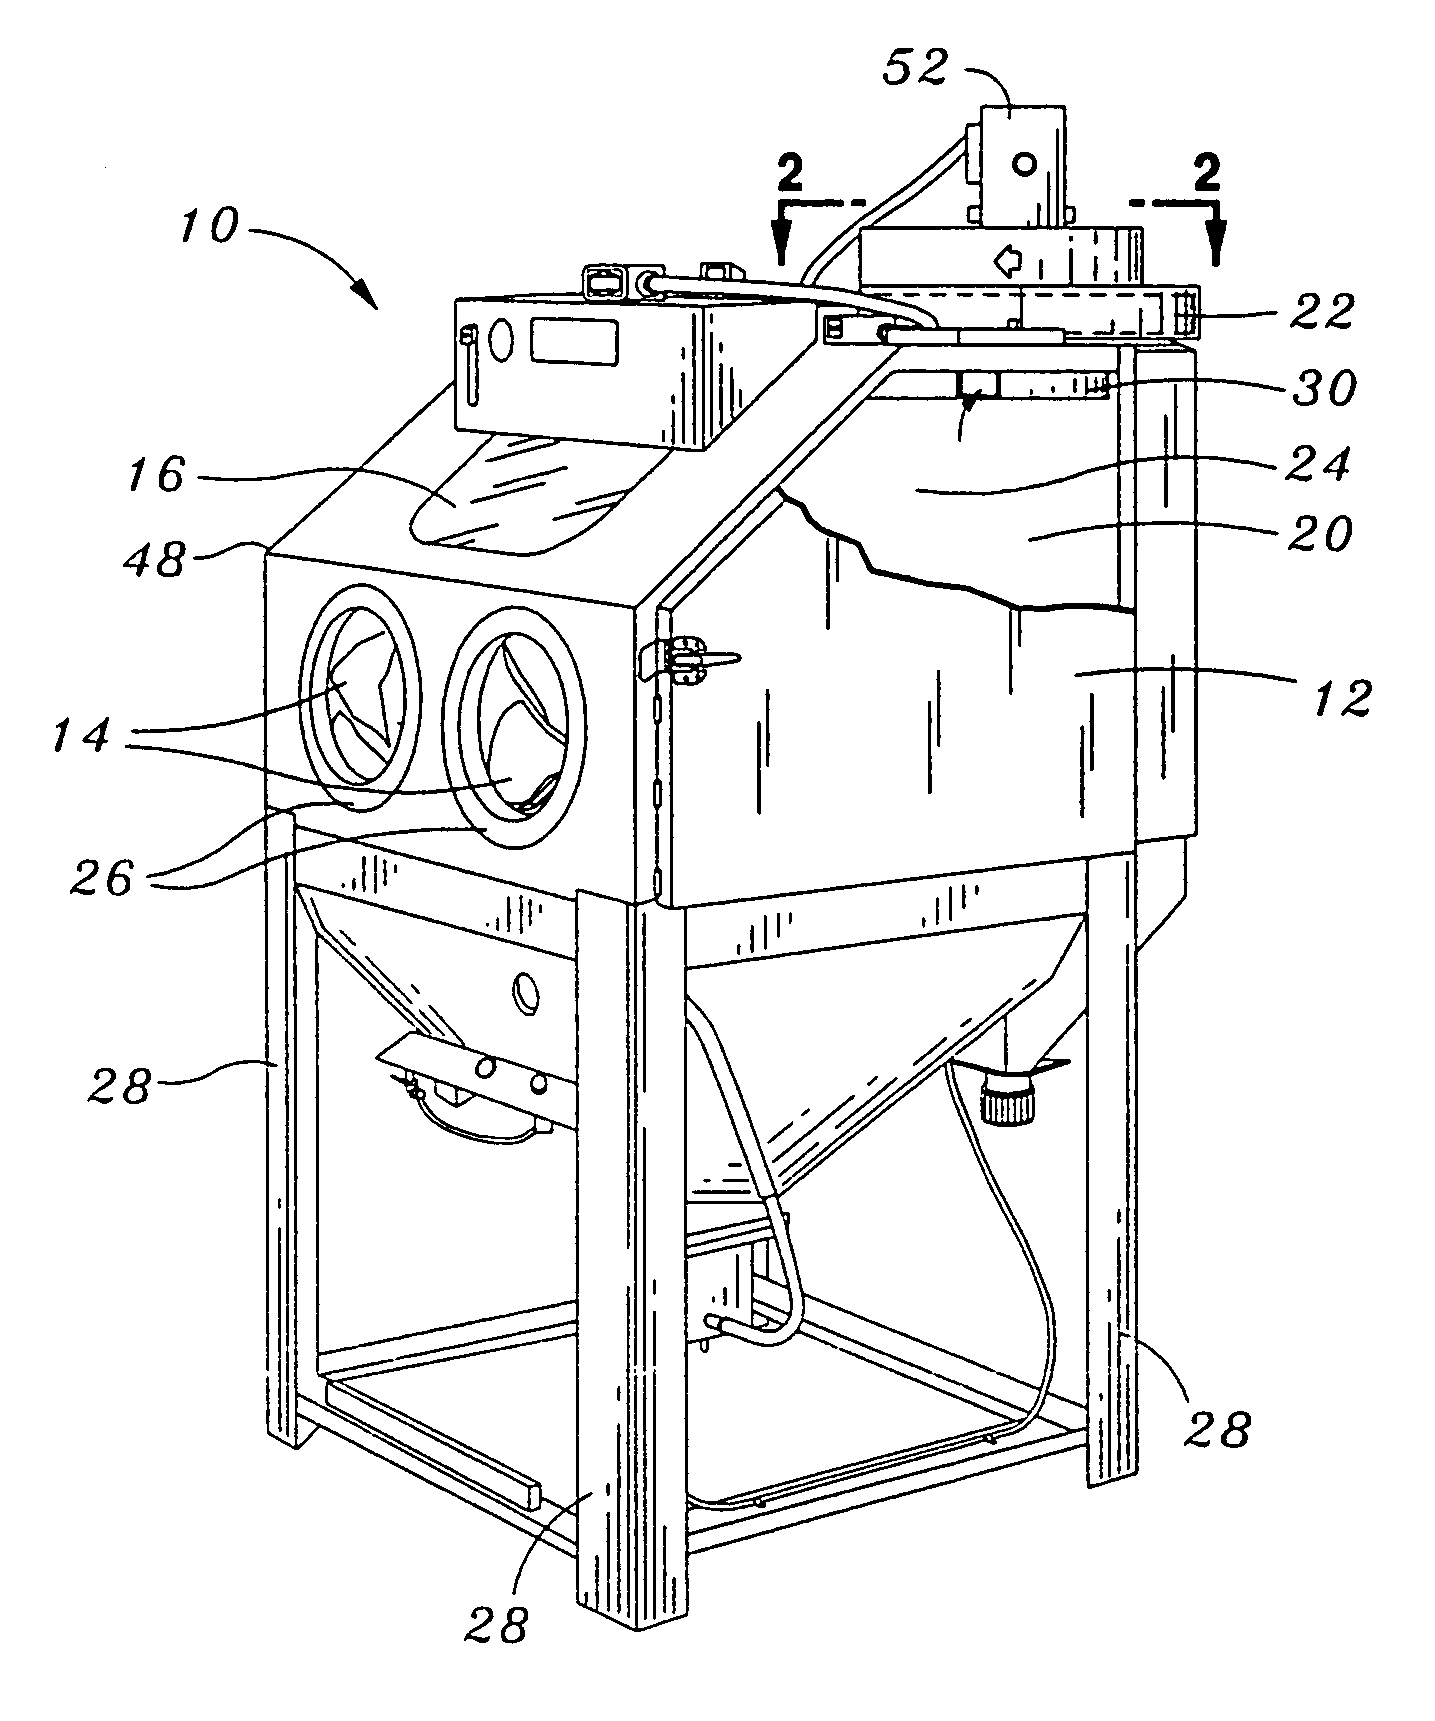 Sand Blasting Cabinets Patent Us7008304 Abrasive And Dust Separator Google Patents